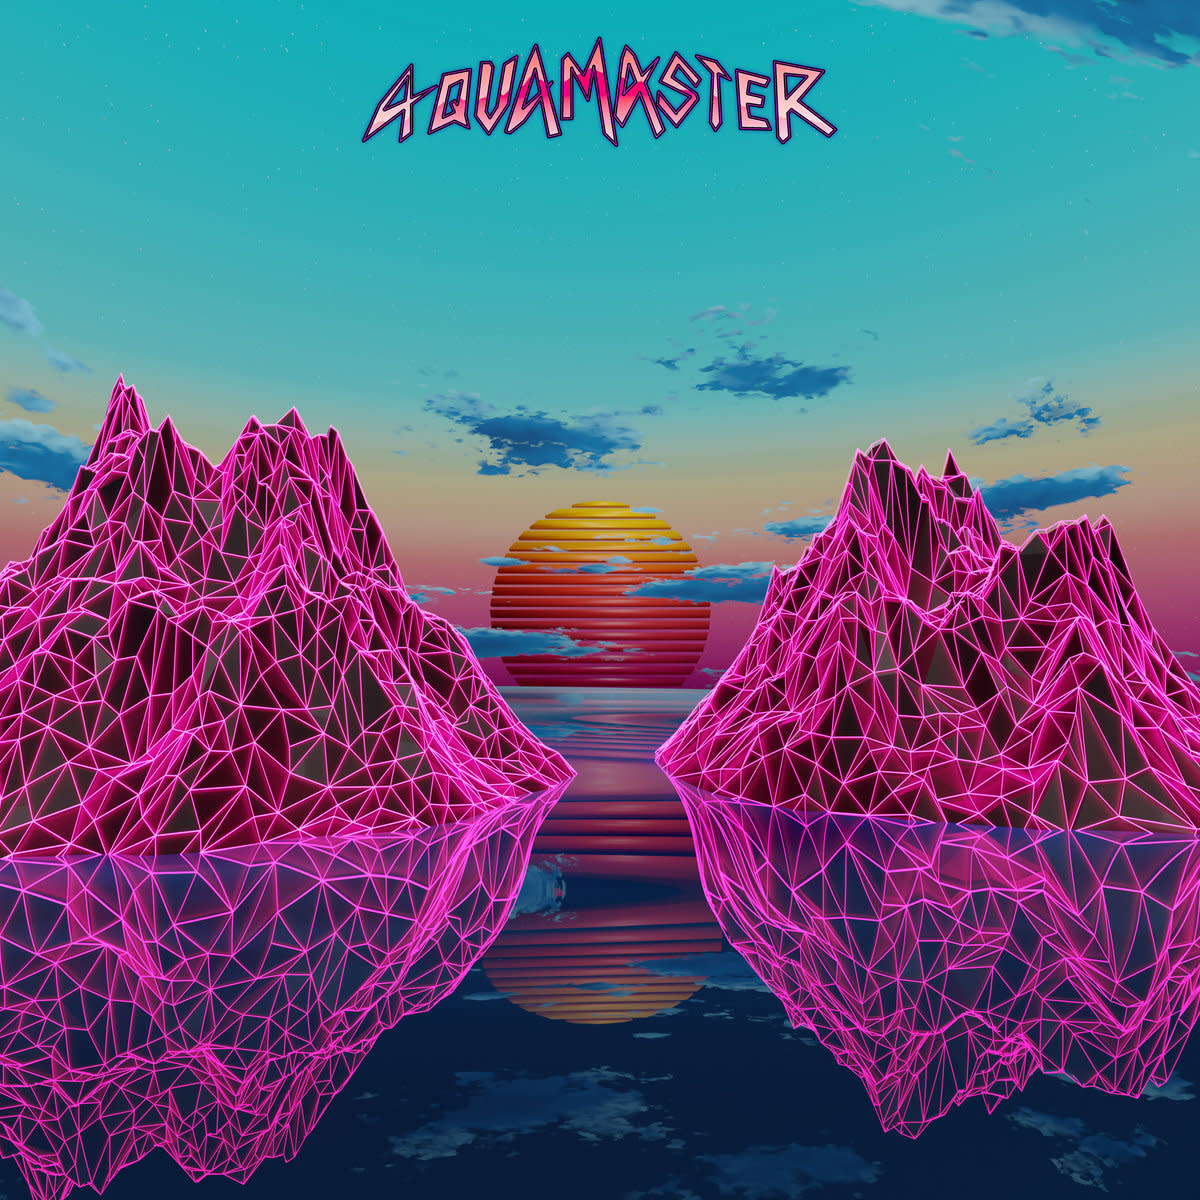 synth-album-review-aquamaster-by-aquamaster